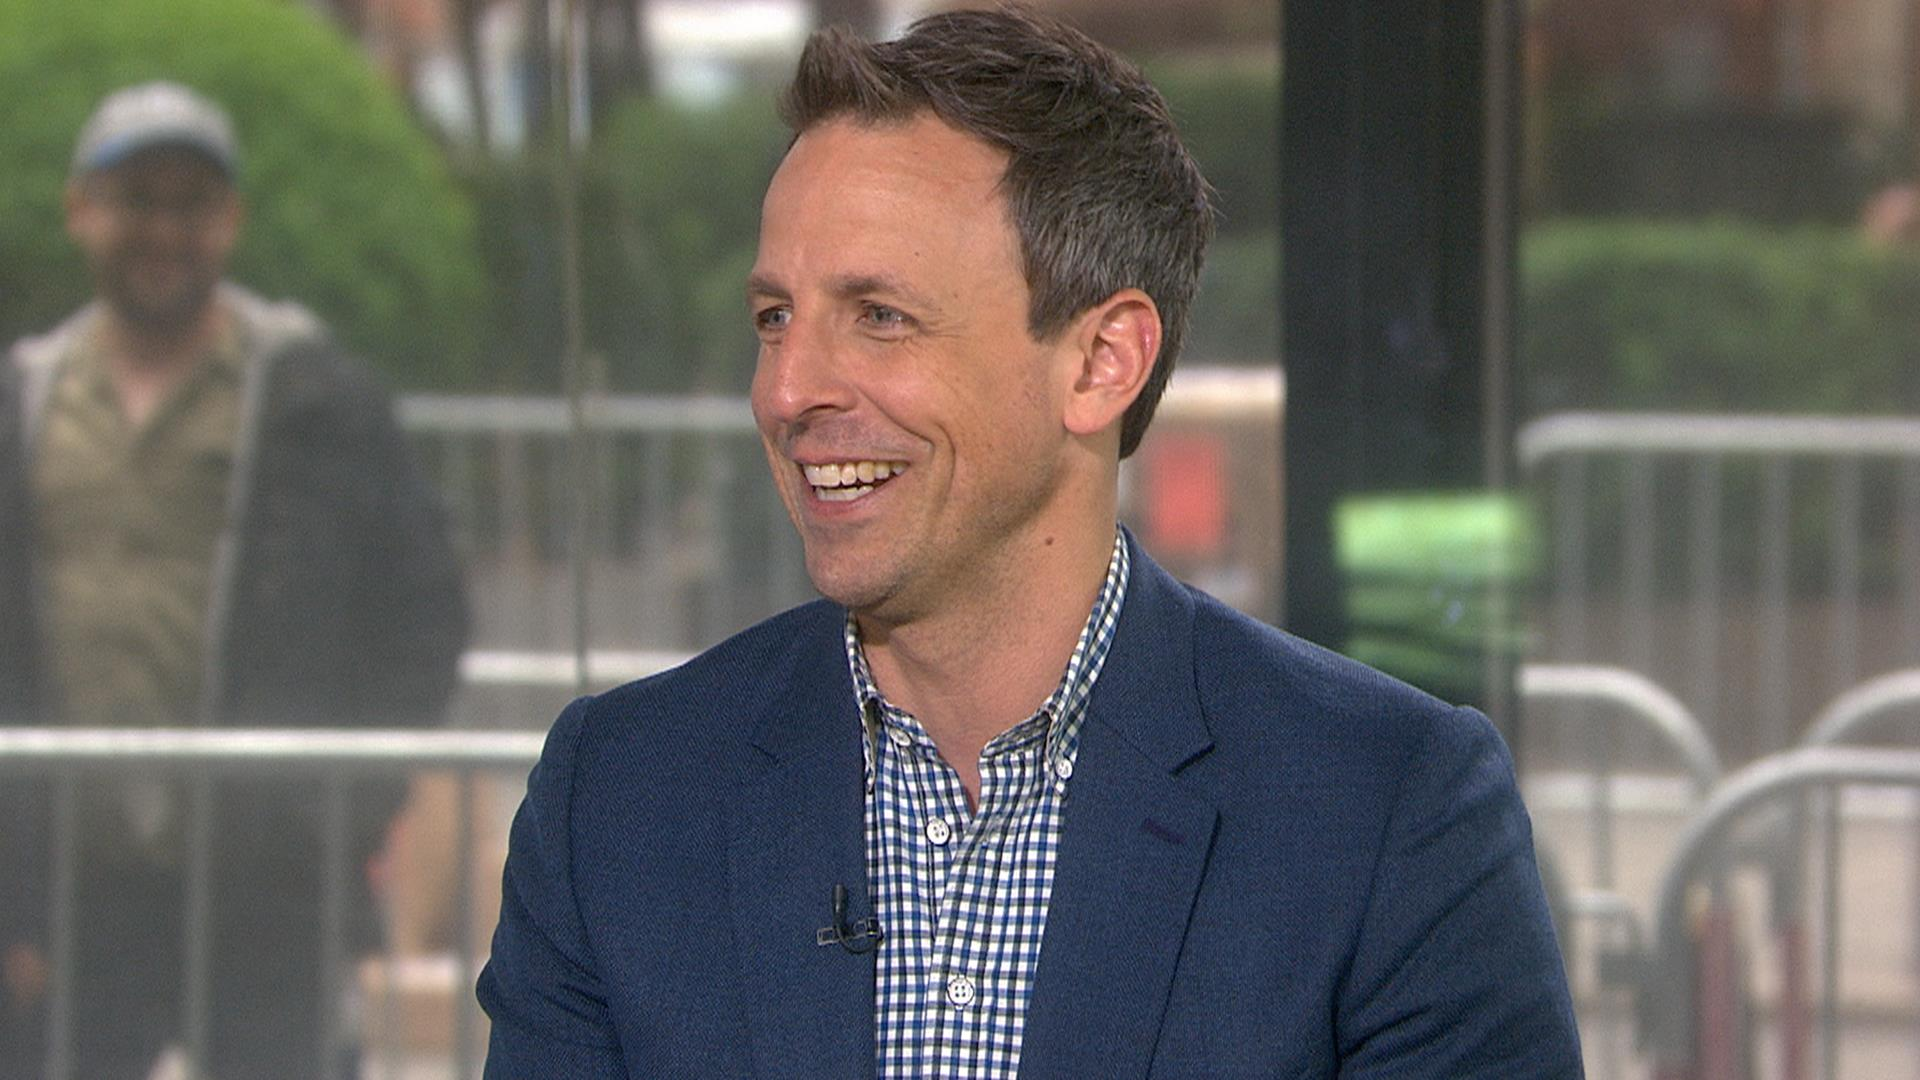 Seth Meyers on night terrors, changing diapers, his rap group, Late Night